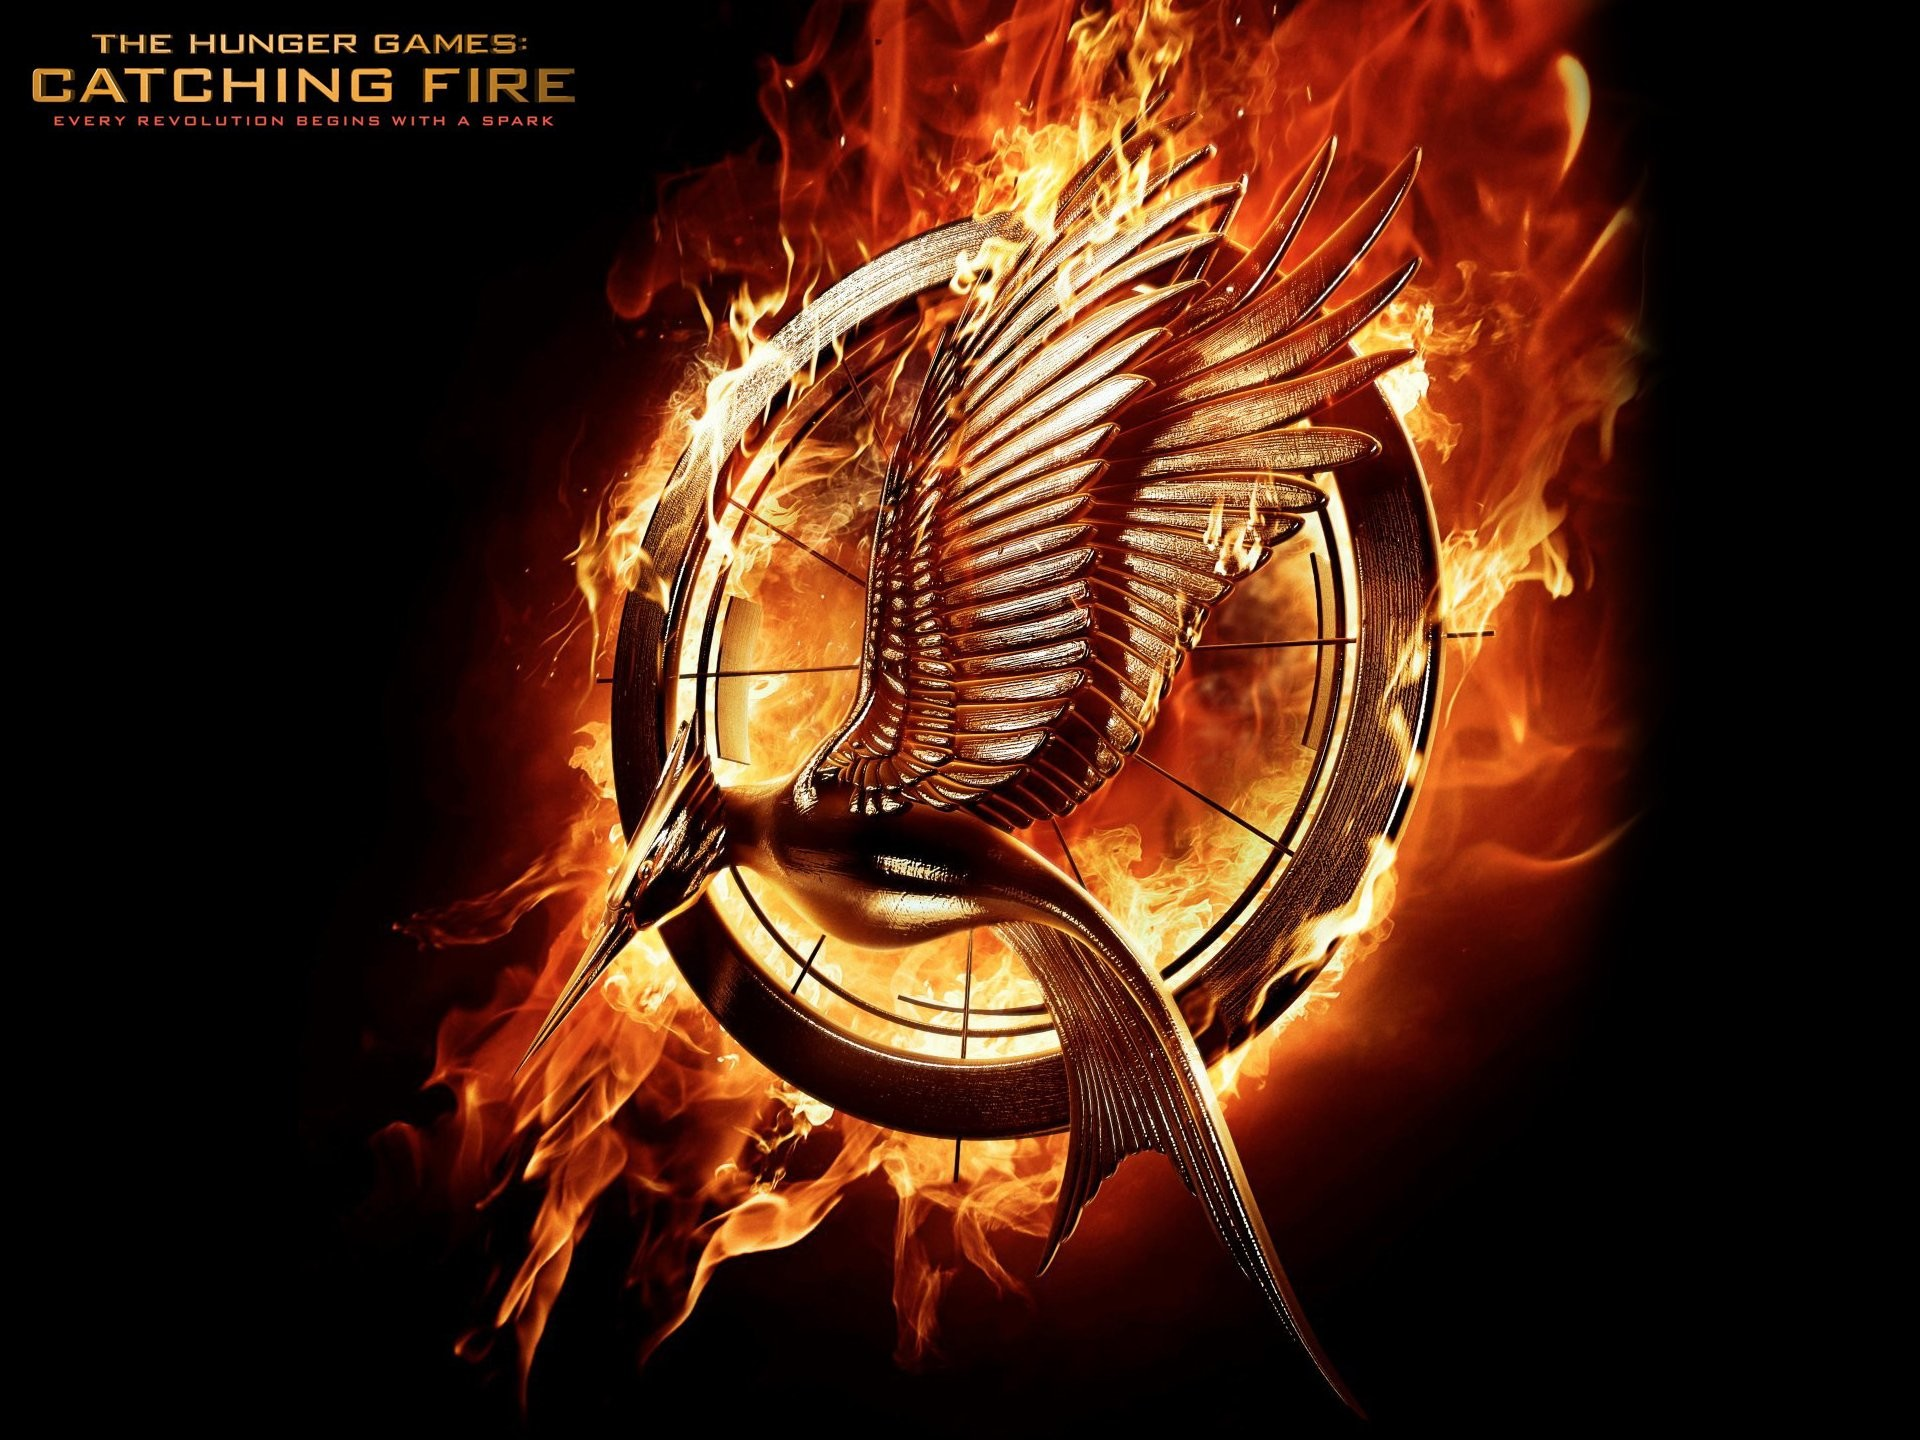 1920x1440 Movie - The Hunger Games: Catching Fire The Hunger Games Wallpaper